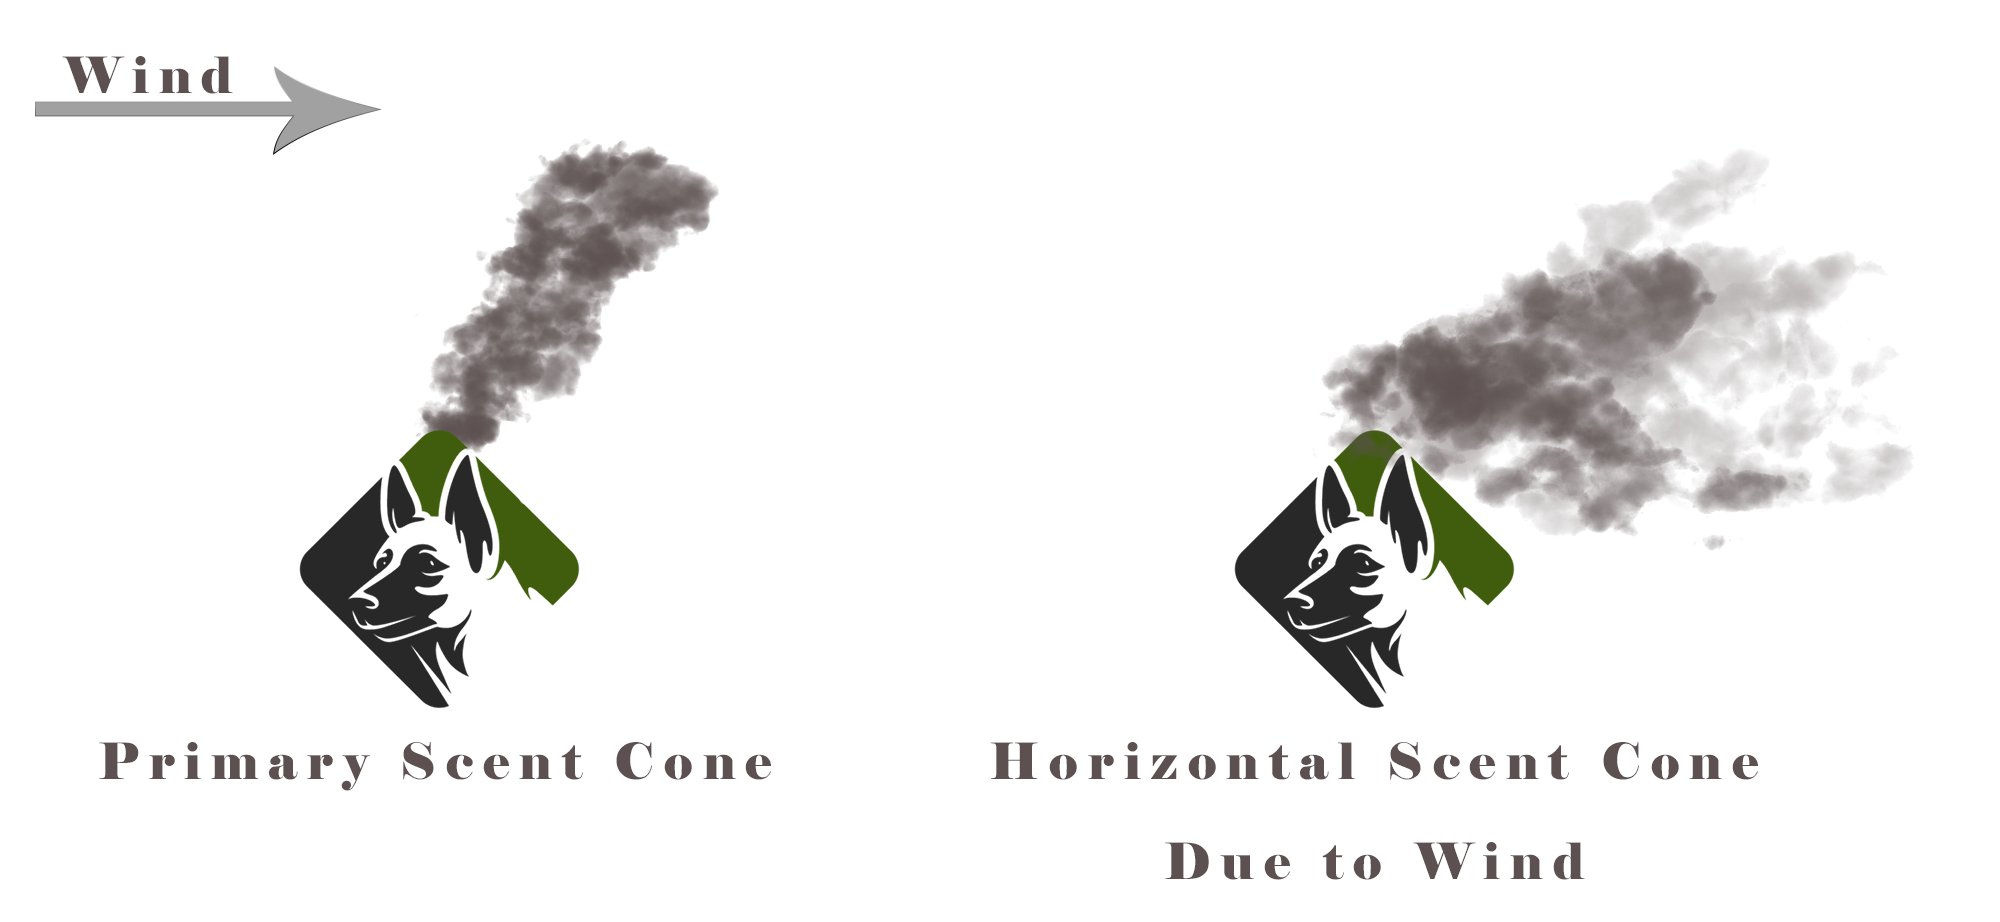 Air movement shifts scent molecules away from the source forming a cone-shape gradient of decreasing concentration and increasing dispersion. Air flow will move the scent away from the source in the direction of the wind, forming an air scent cone.